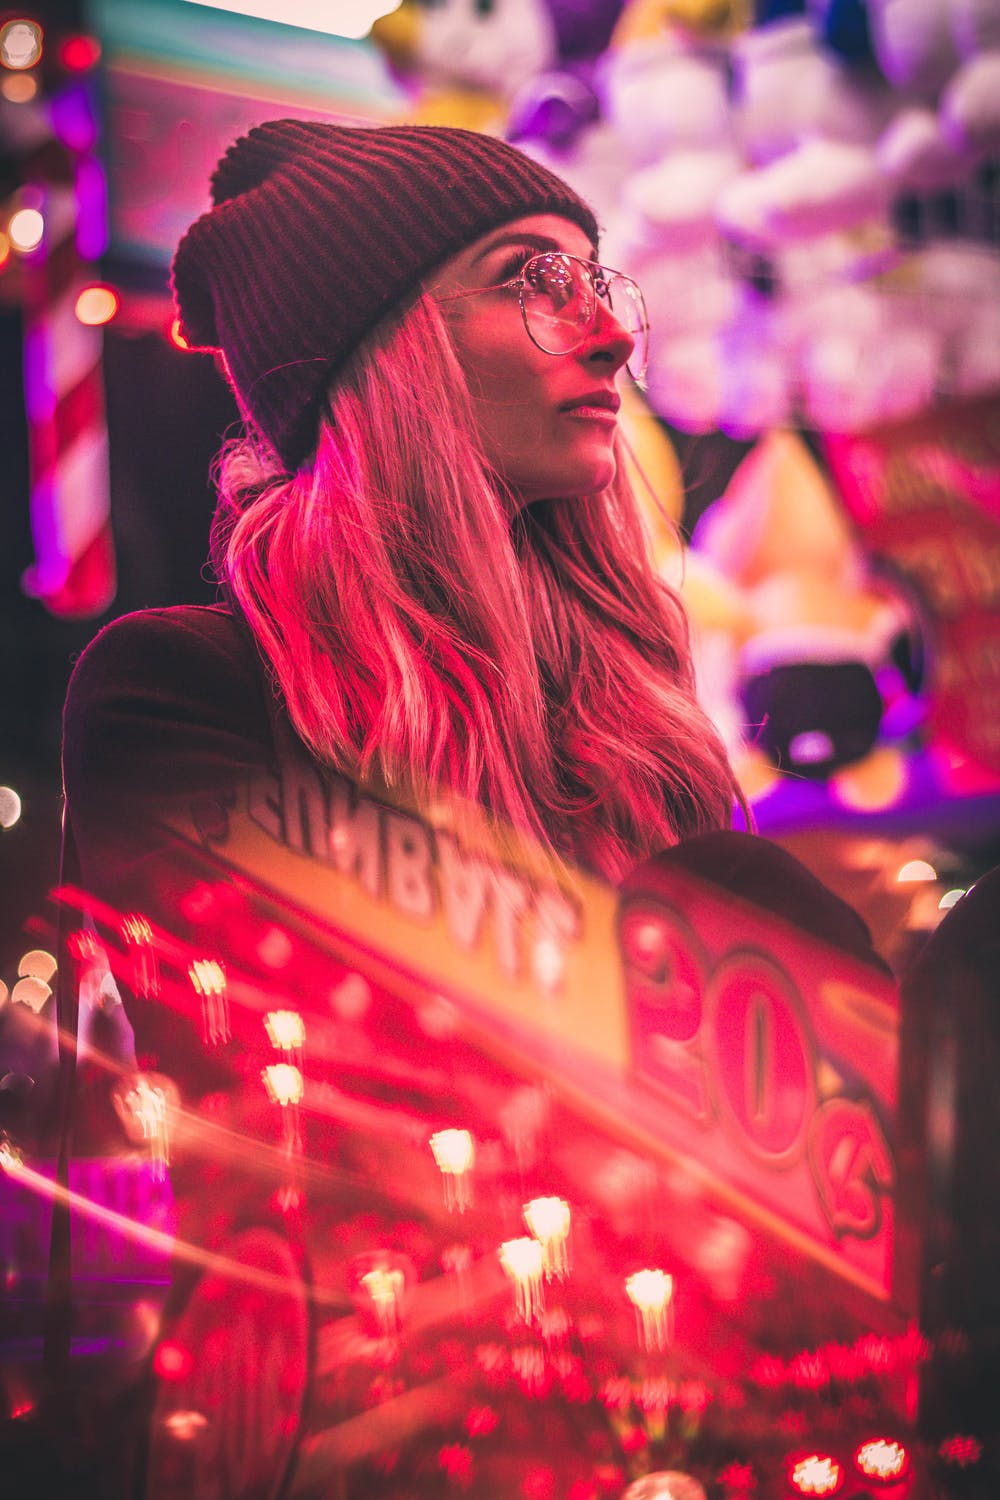 Woman wearing black knit cap and eyeglasses. | Photo: Pexels